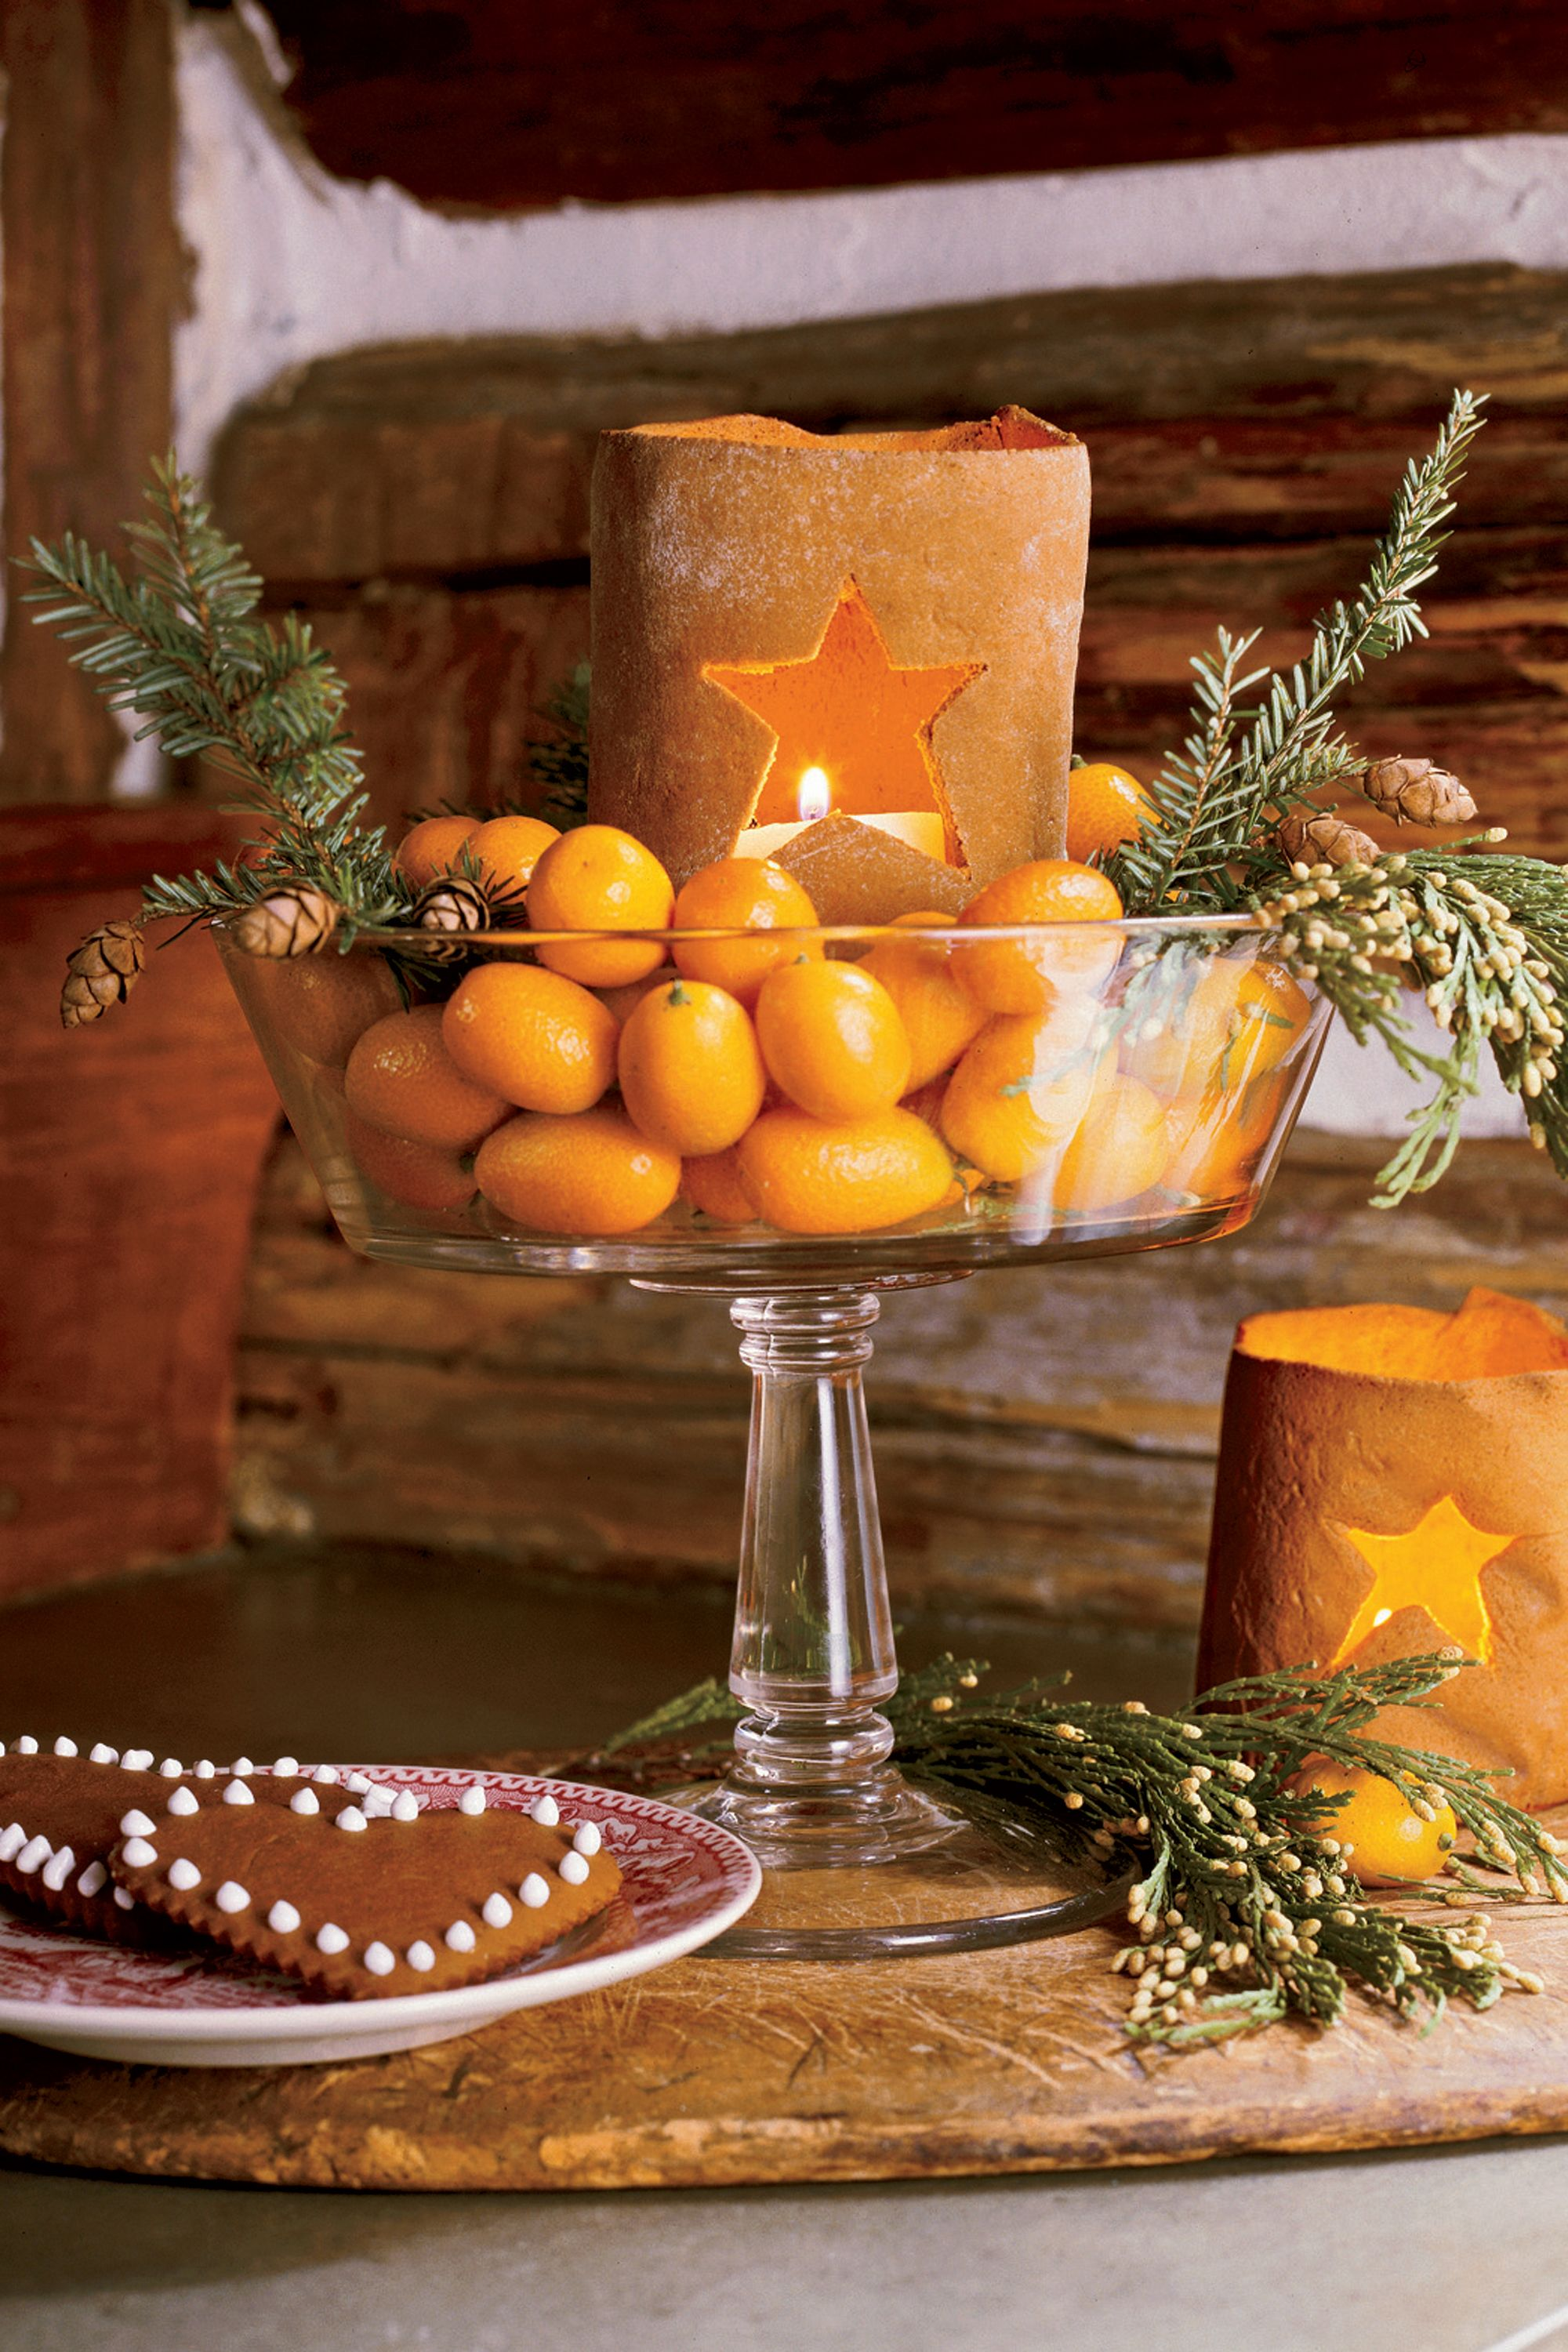 christmas centerpieces for round tables. 49 Best Christmas Table Settings - Decorations And Centerpiece Ideas For Your Centerpieces Round Tables N